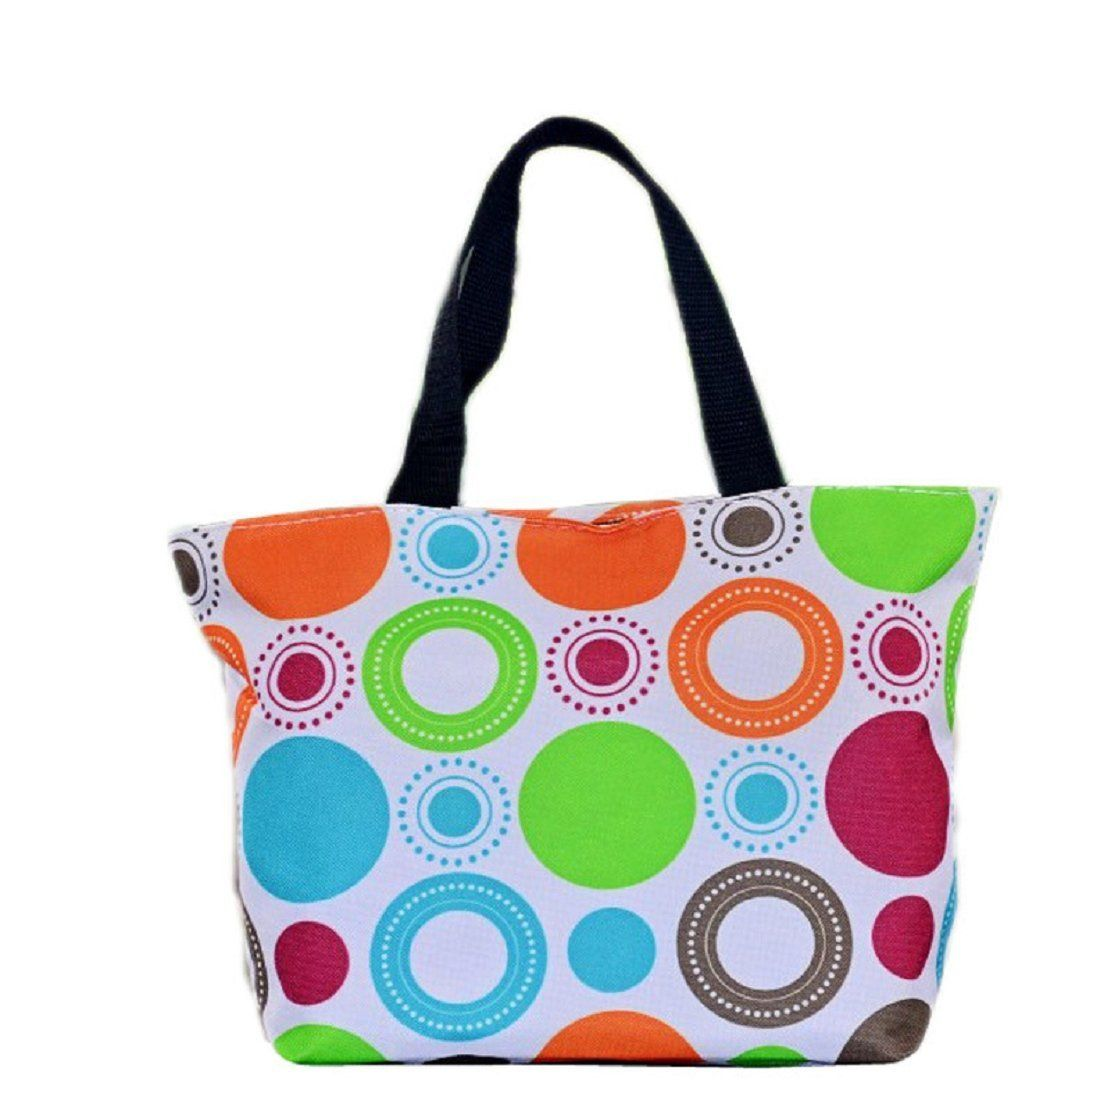 7ac00bcb85c Insulated Neoprene Lunch Tote Only $3.49 + FREE Shipping | Lunch ...